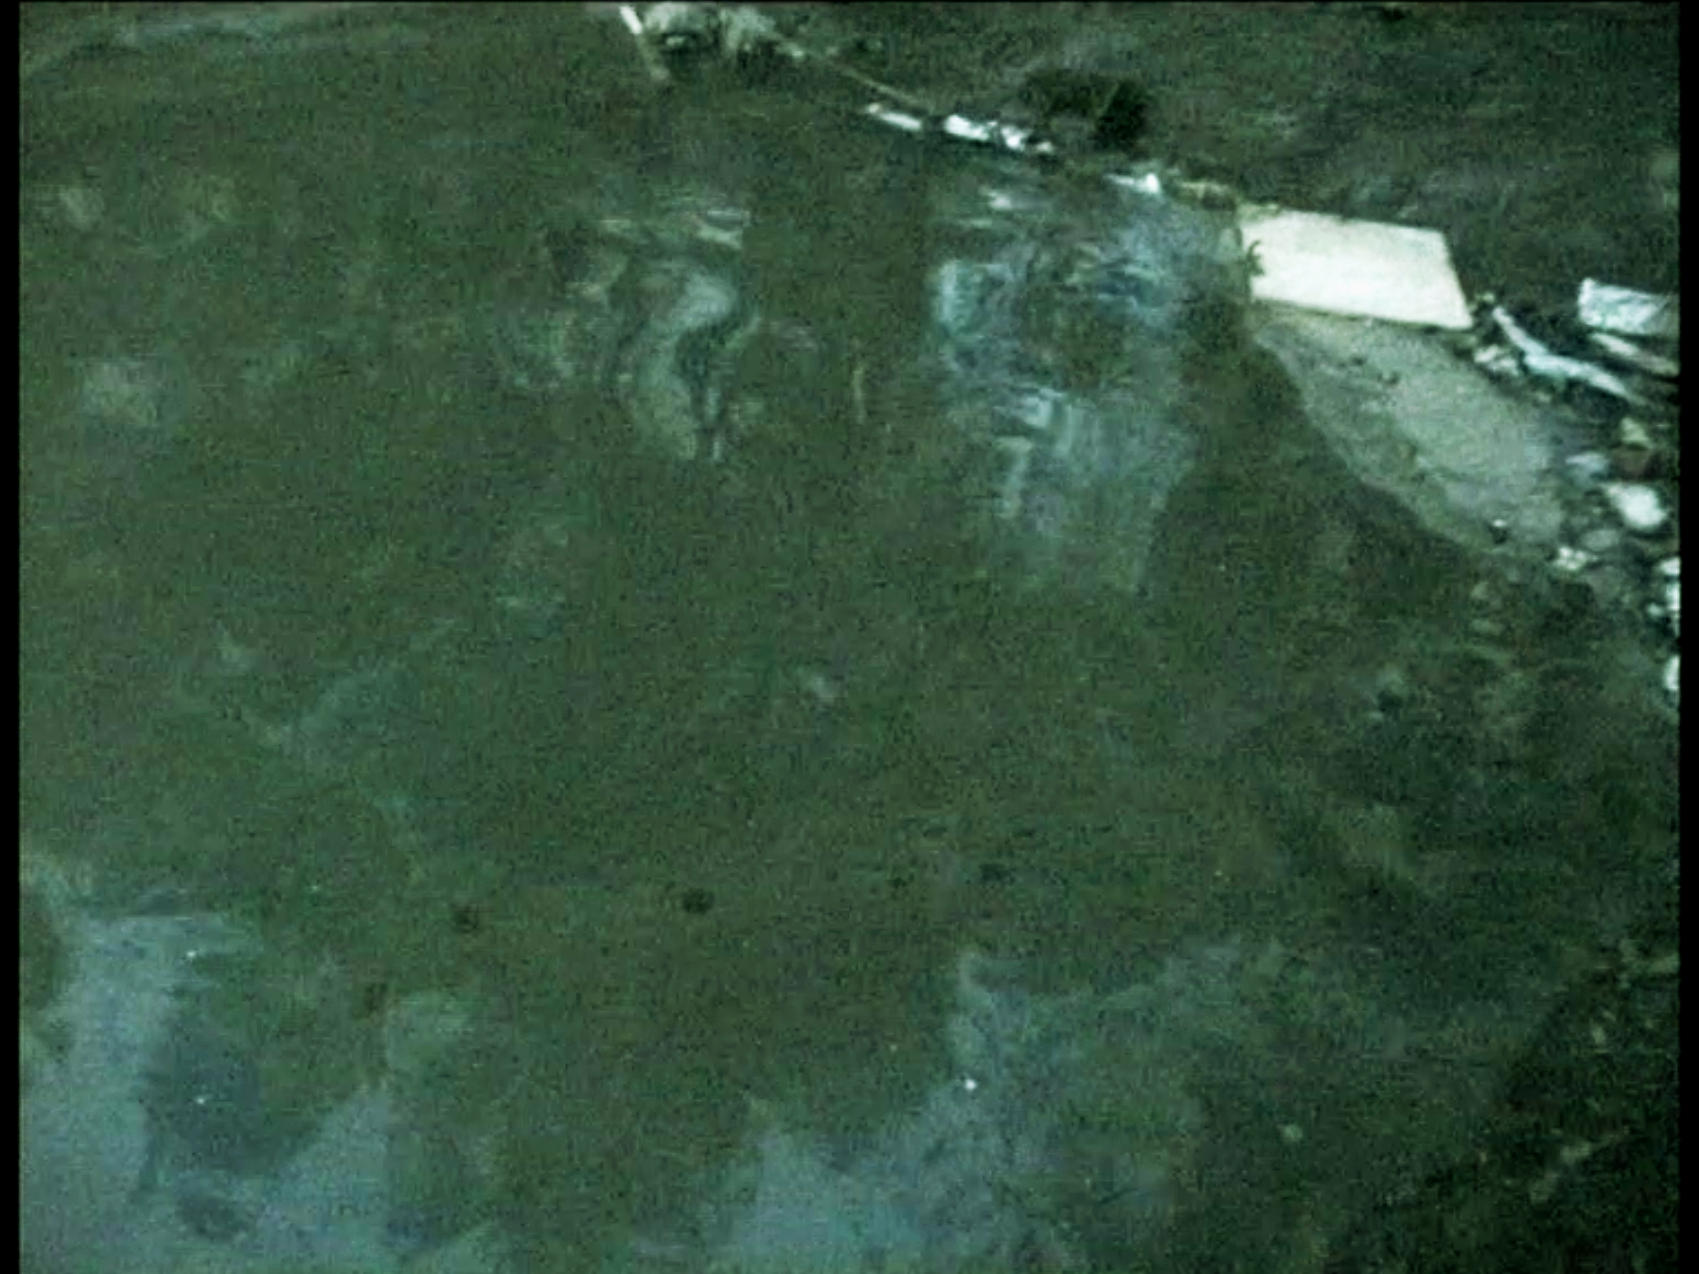 Peng Yu, Exile, 2000. Video still. Collection of M HKA /Museum of Contemporary Art, Antwerp.